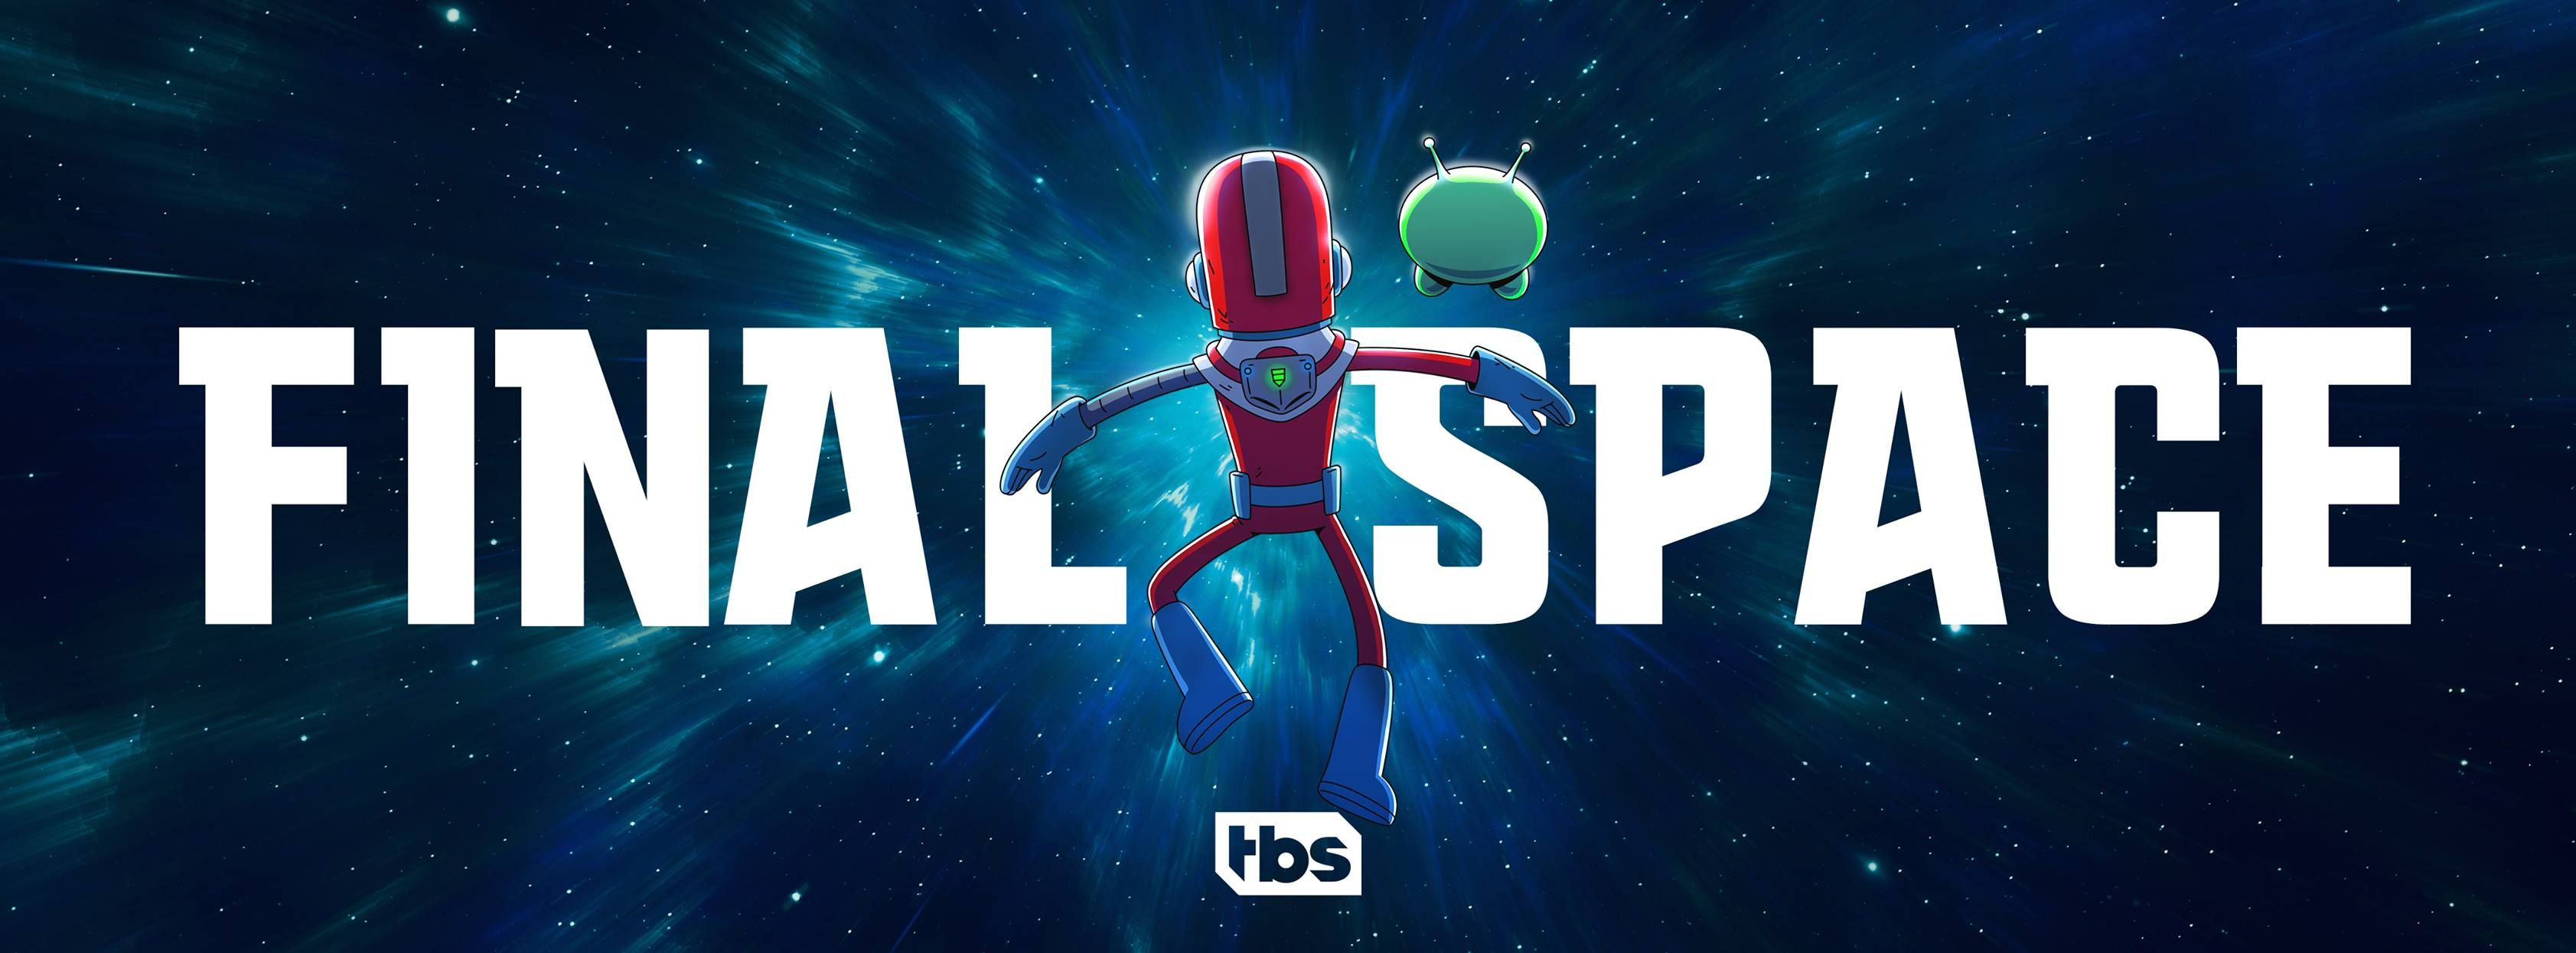 TBS has announced the series premiere of its new animated Final ...